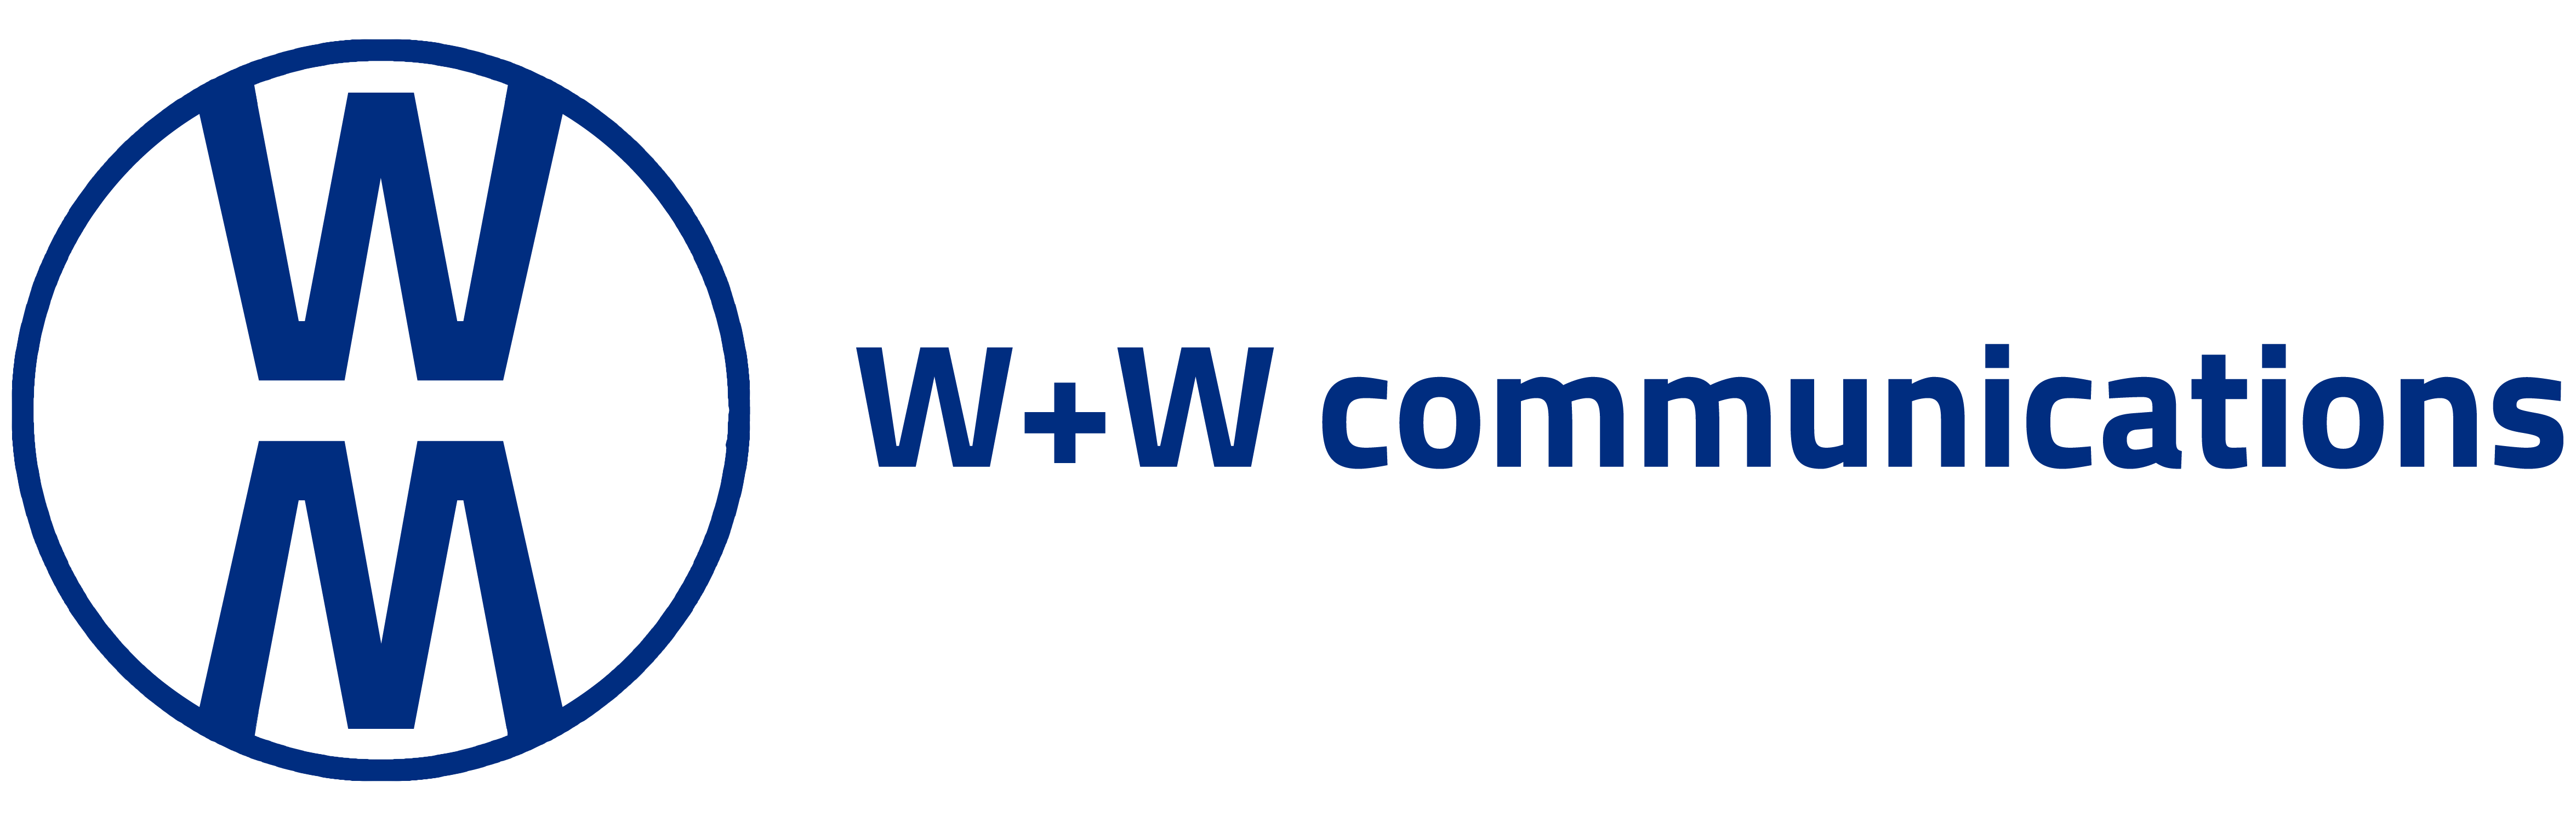 W+W communications